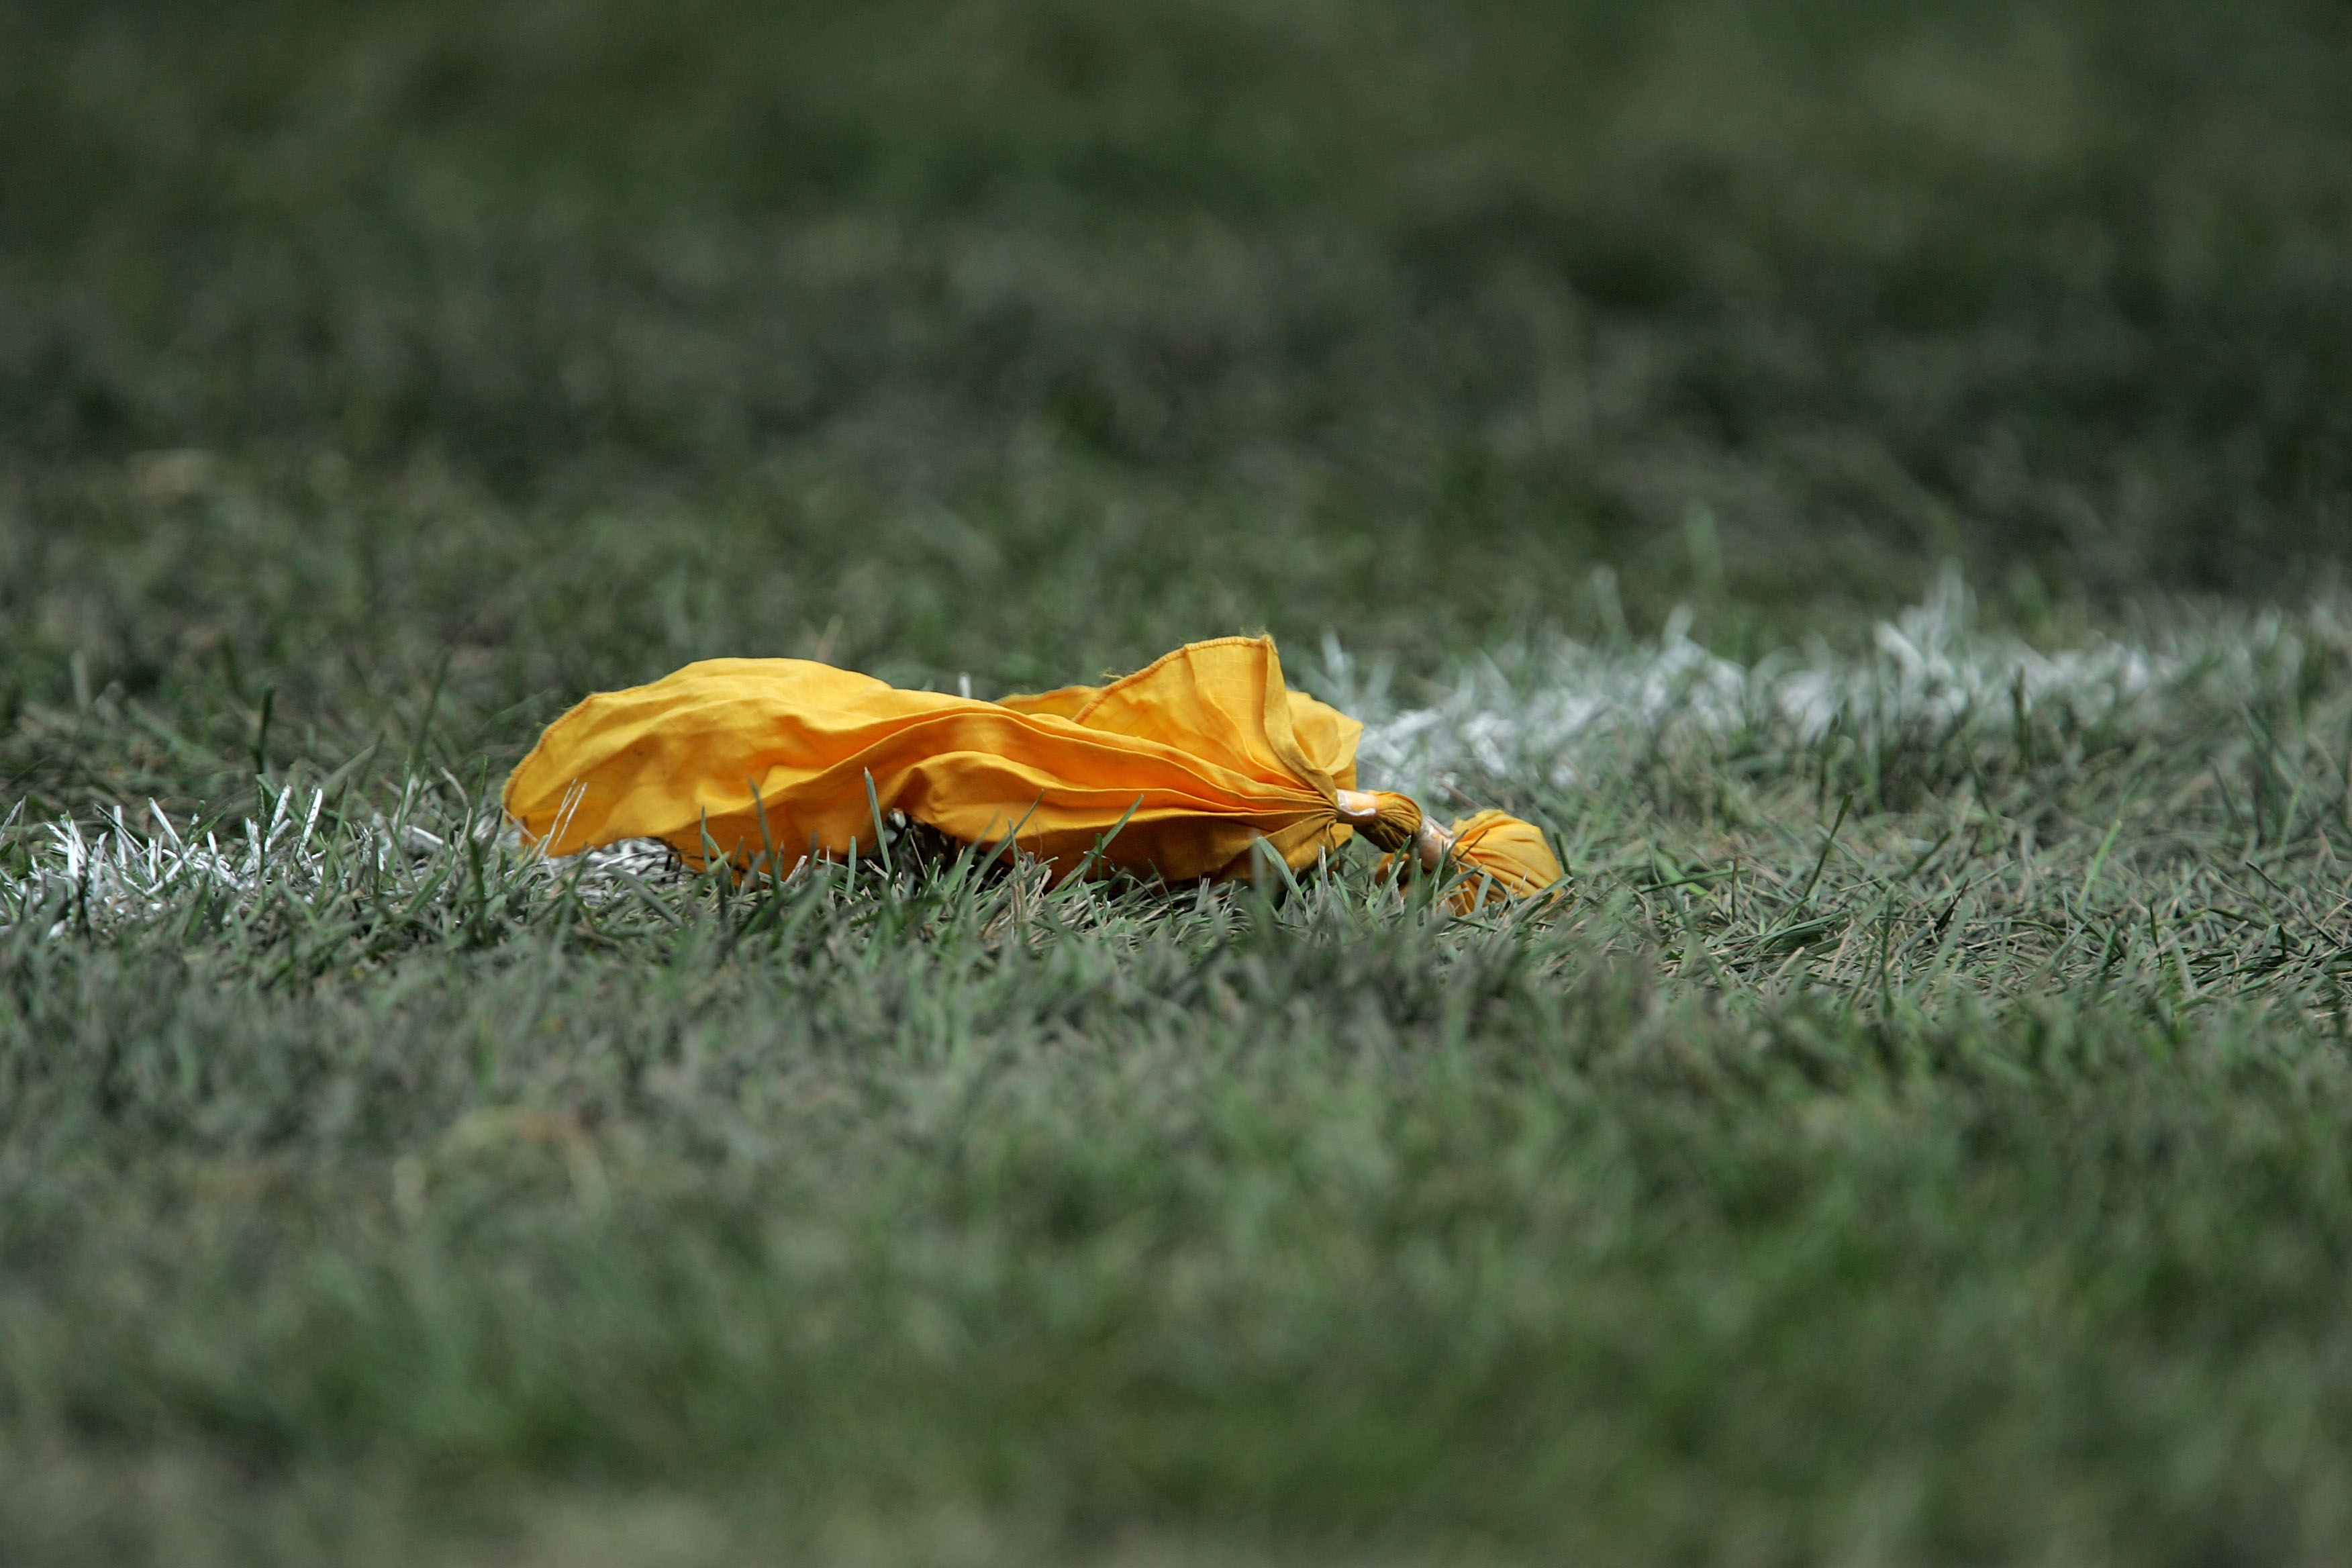 CHICAGO - SEPTEMBER 17:  A yellow penelty flag is seen on the field during the game between the Chicago Bears and the Detroit Lions September 17, 2006 at Soldier Field in Chicago, Illinois. The Bears won 34-7. (Photo by Jonathan Daniel/Getty Images)